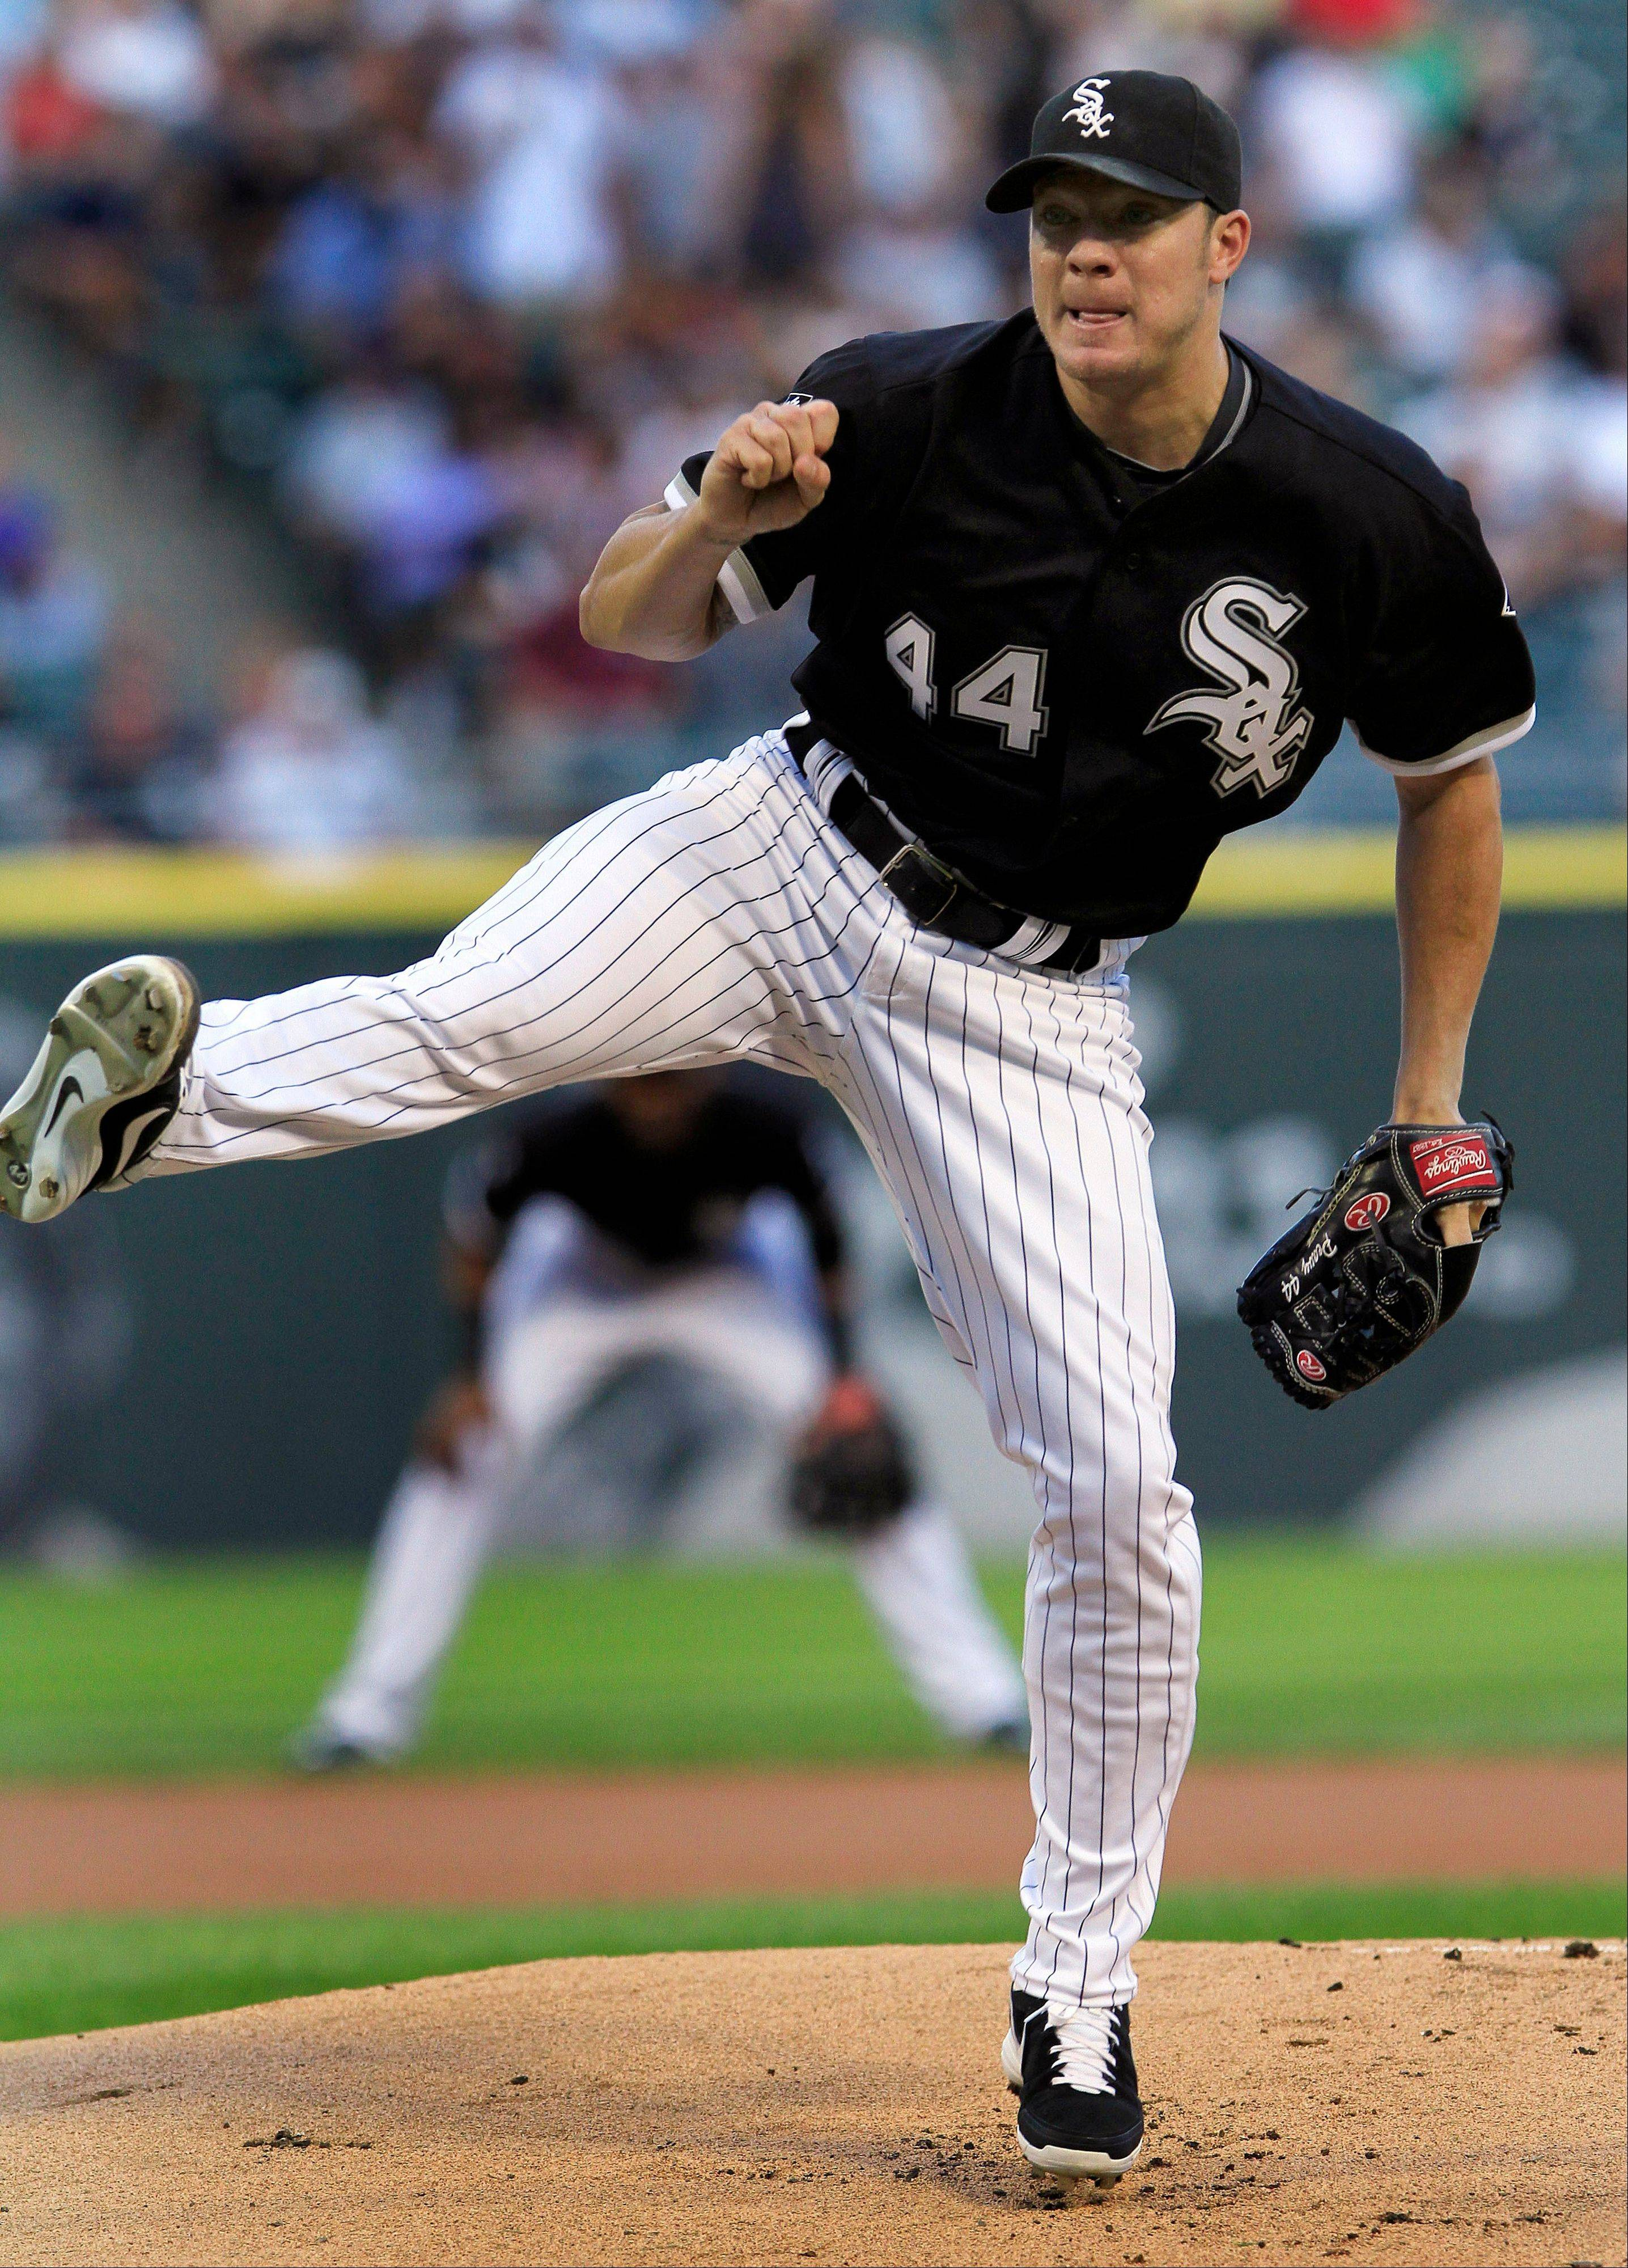 White Sox starting pitcher Jake Peavy allowed 3 runs on 7 hits in 6 innings Tuesday night and took the 5-2 loss against the Kansas City Royals.